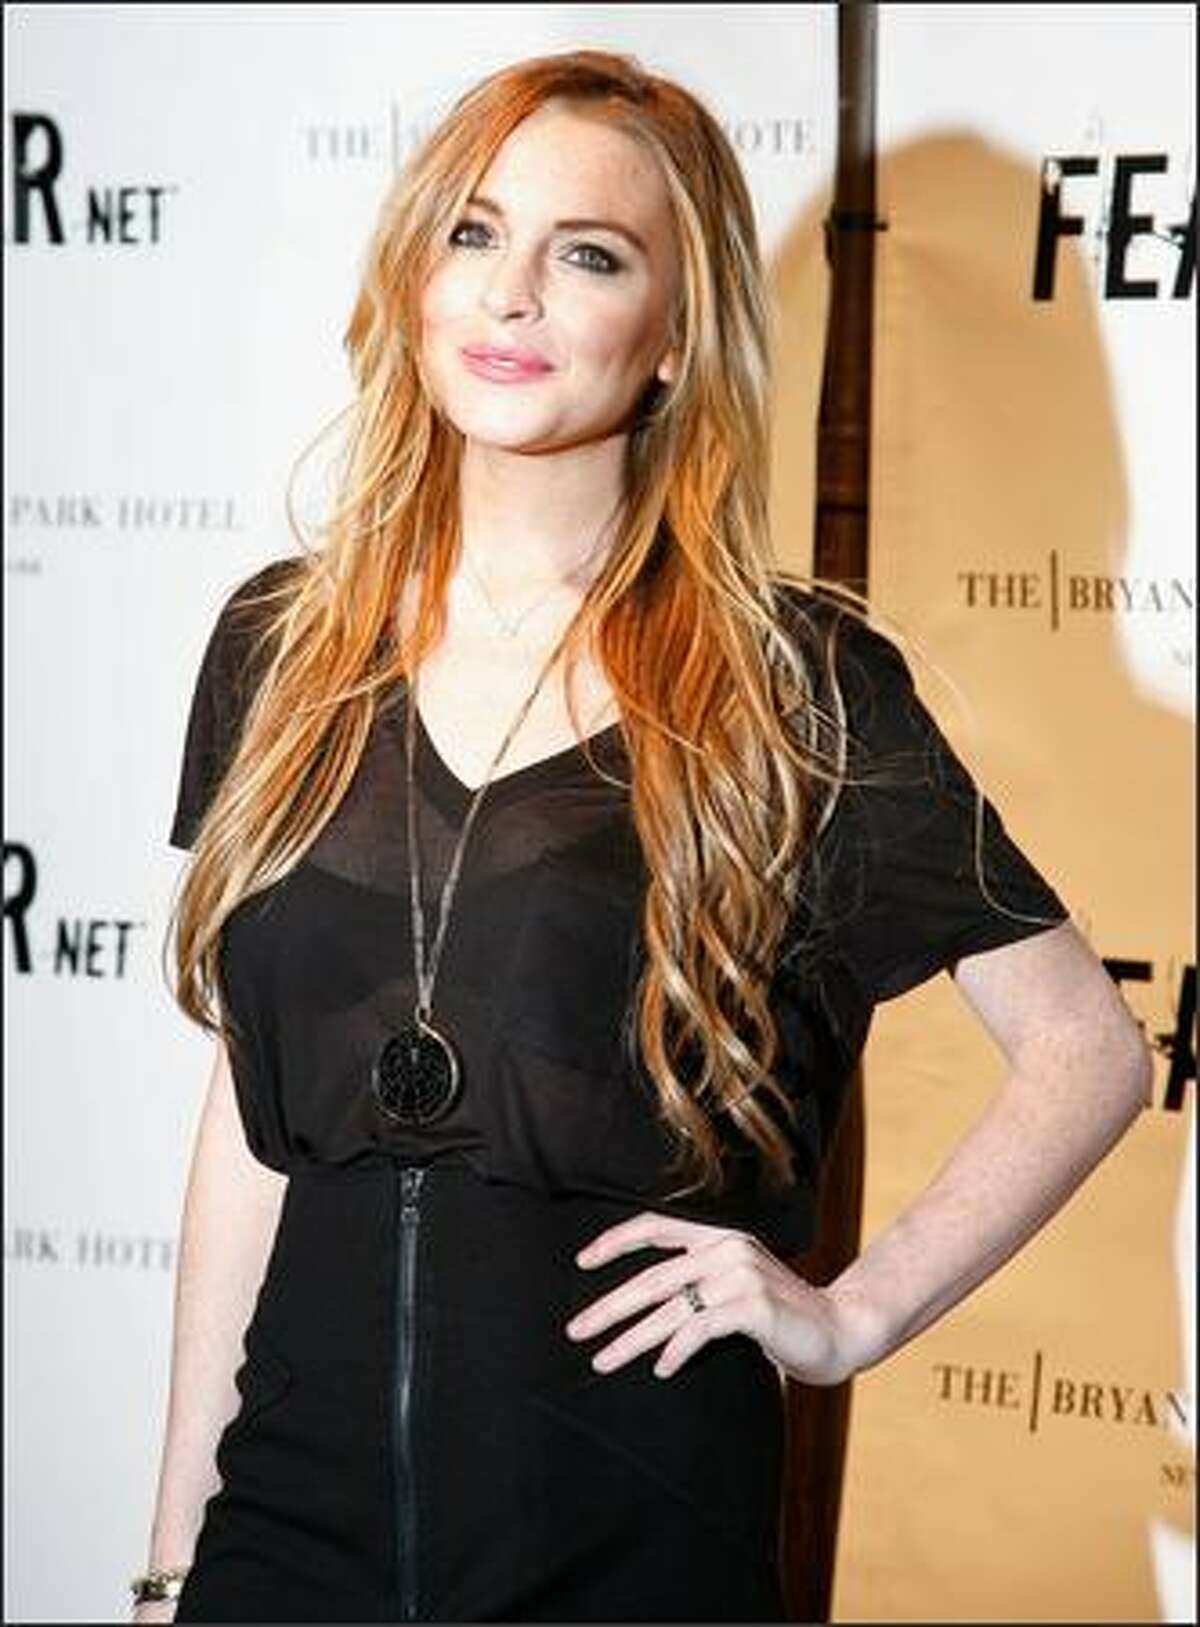 Actress Lindsay Lohan attends FEARnet's 2nd anniversary party at The Cellar Bar at Bryant Park Hotel on Tuesday in New York City.